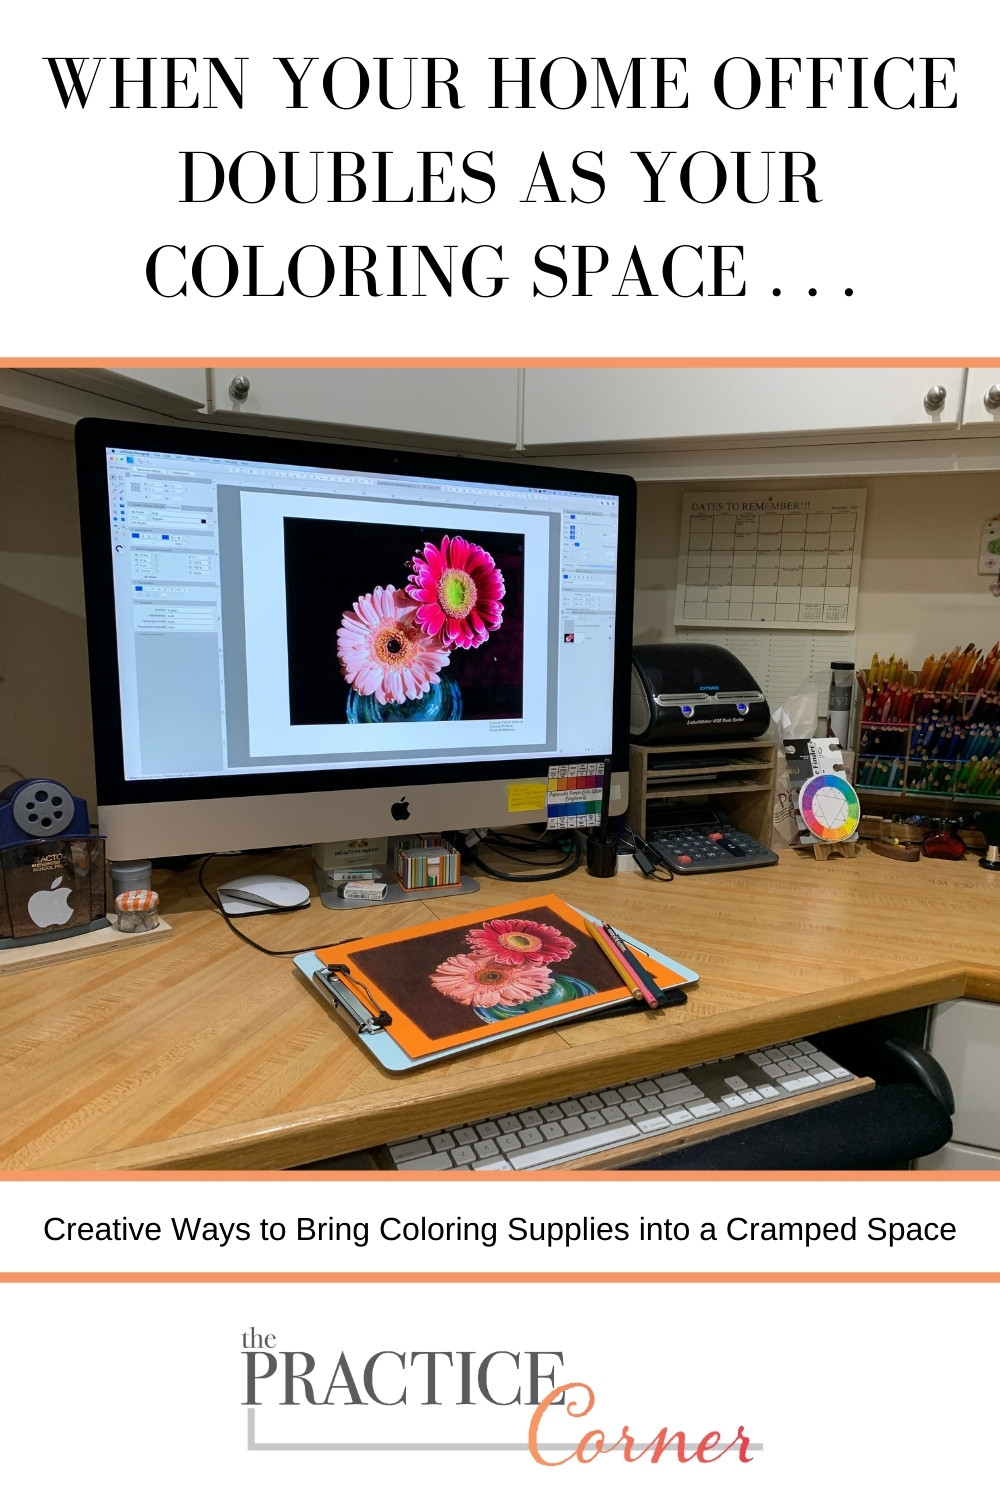 Creative ways to bring coloring supplies into a cramped space. | The Practice Corner | How to improve your coloring | #organizeartsupplies